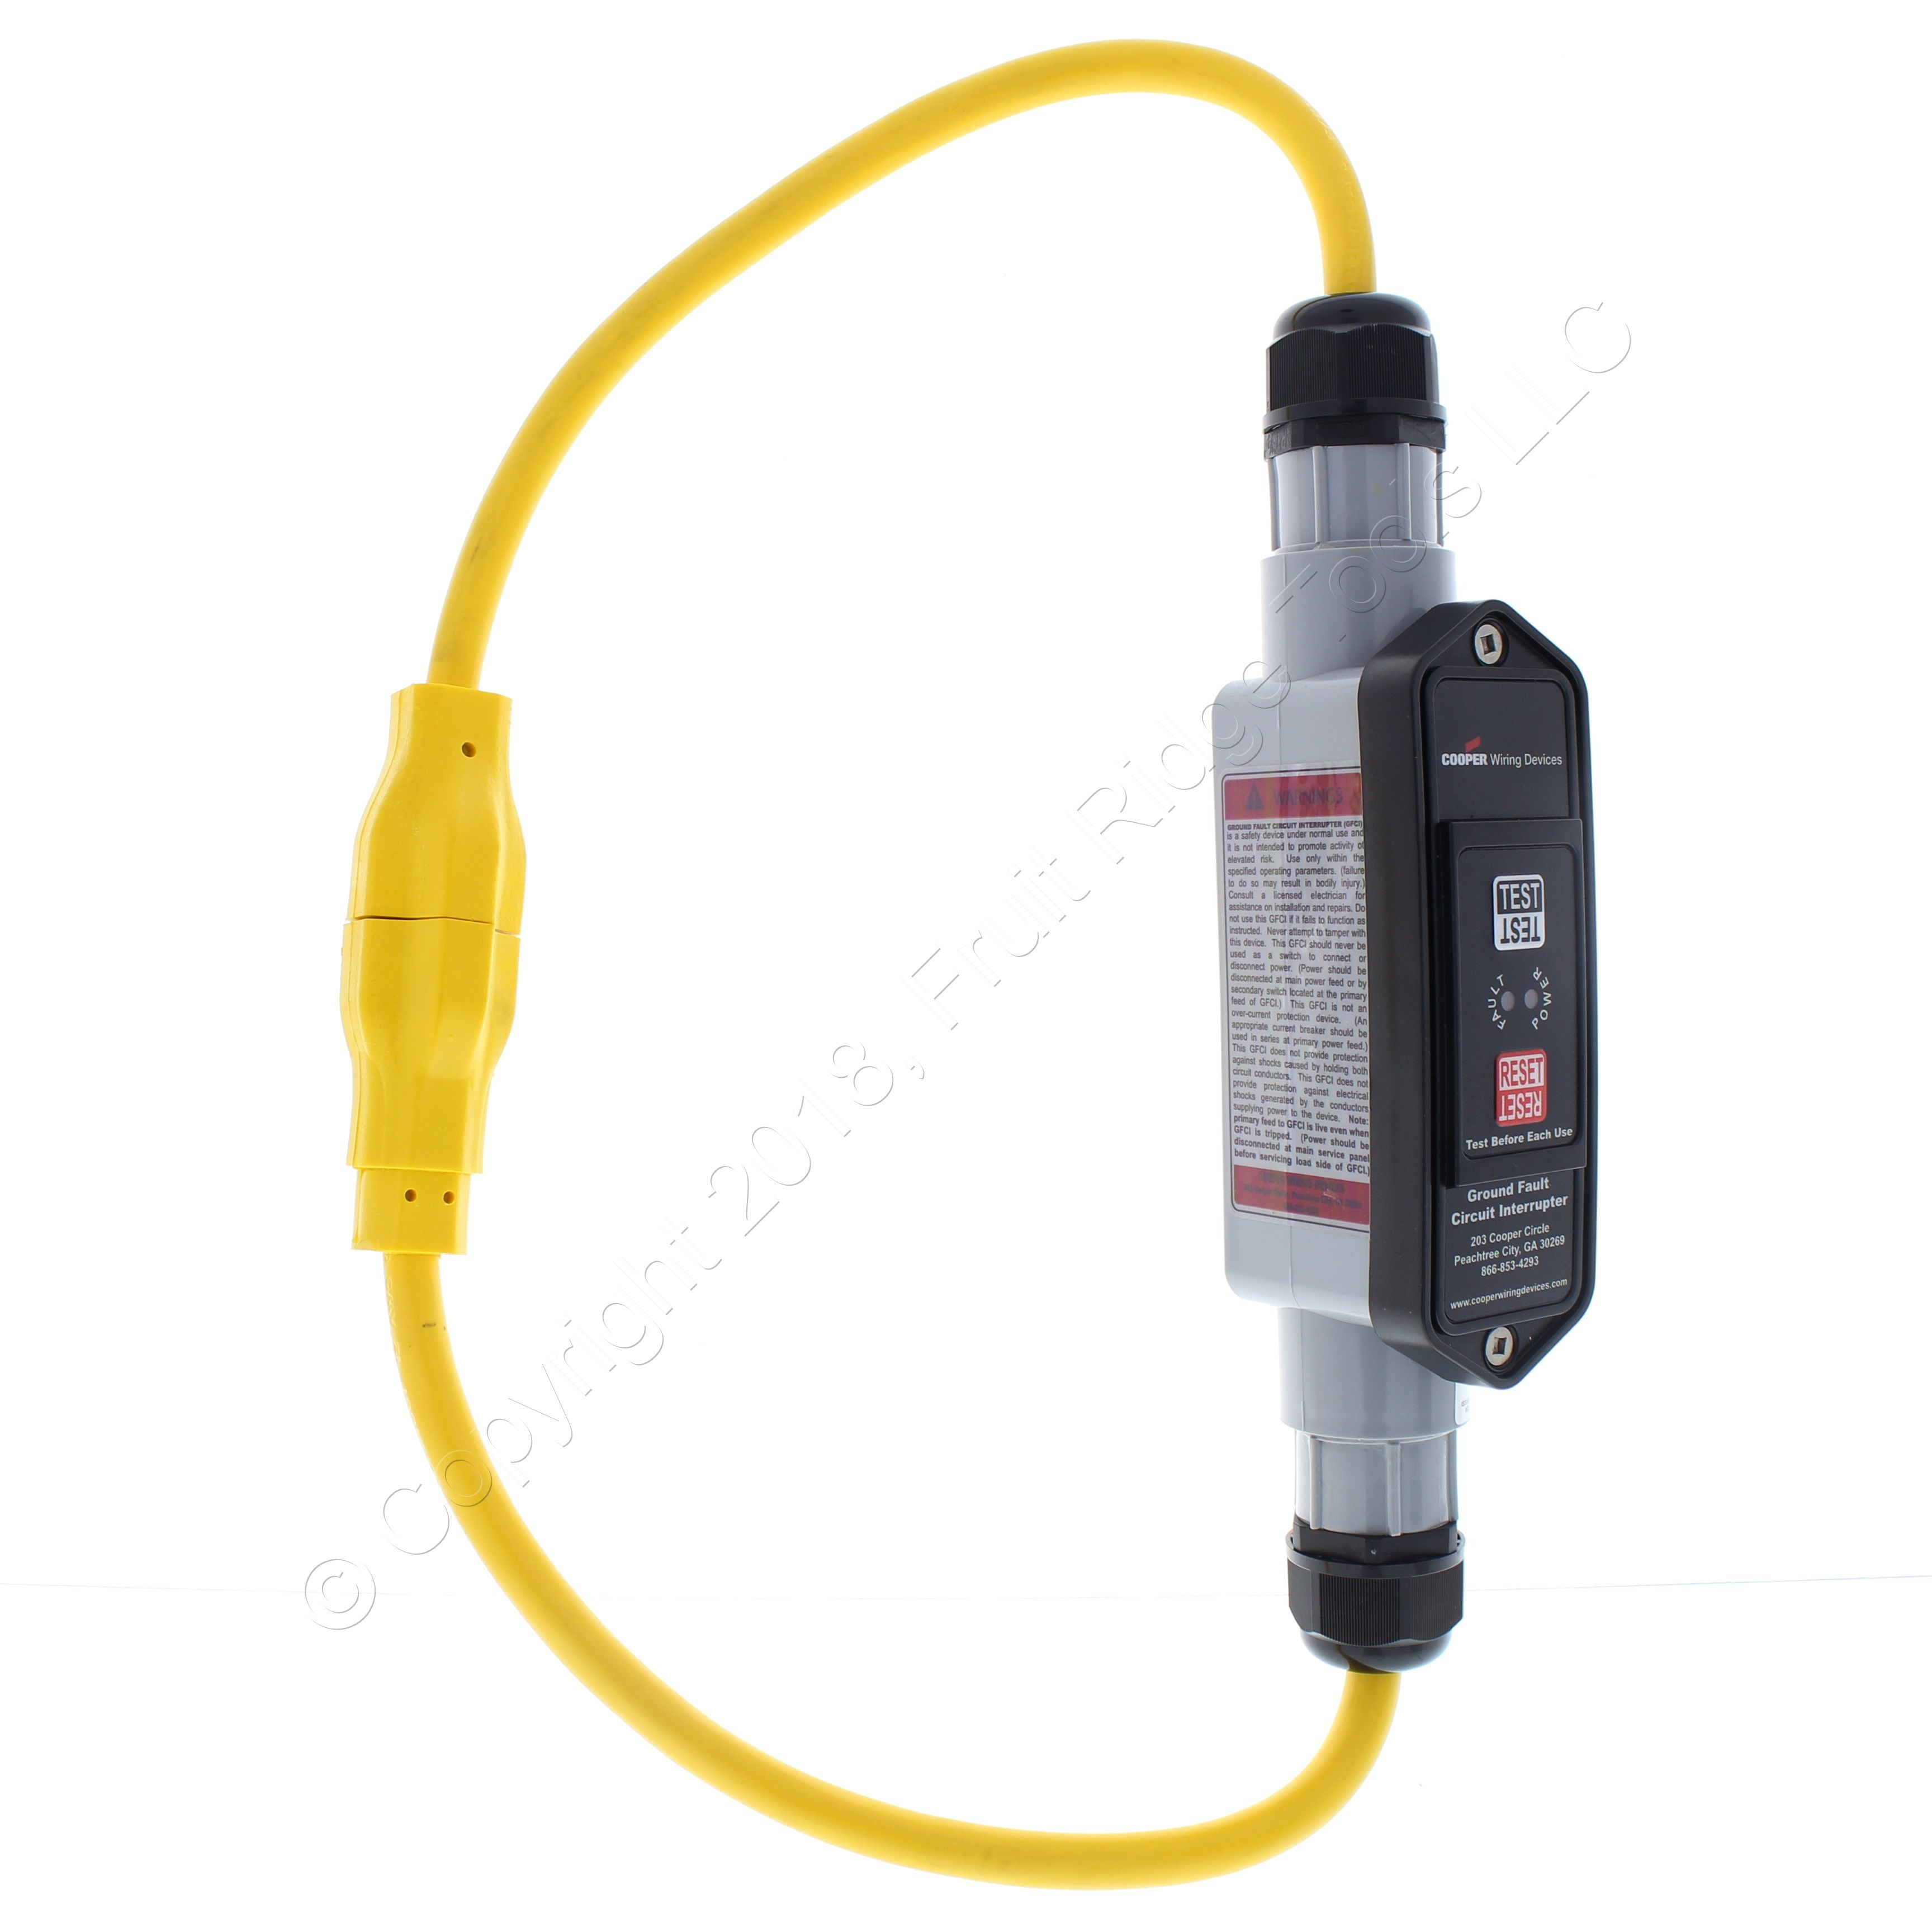 Shop Cooper Industrial Grade In Line 2ft Portable Gfci 12 3 Groundfault Circuit Interrupter Protects From Electric Shock Cordset Nema 4x 20a 120v Pc Mold Automatic Gfi12a133 Fruit Ridge Tools